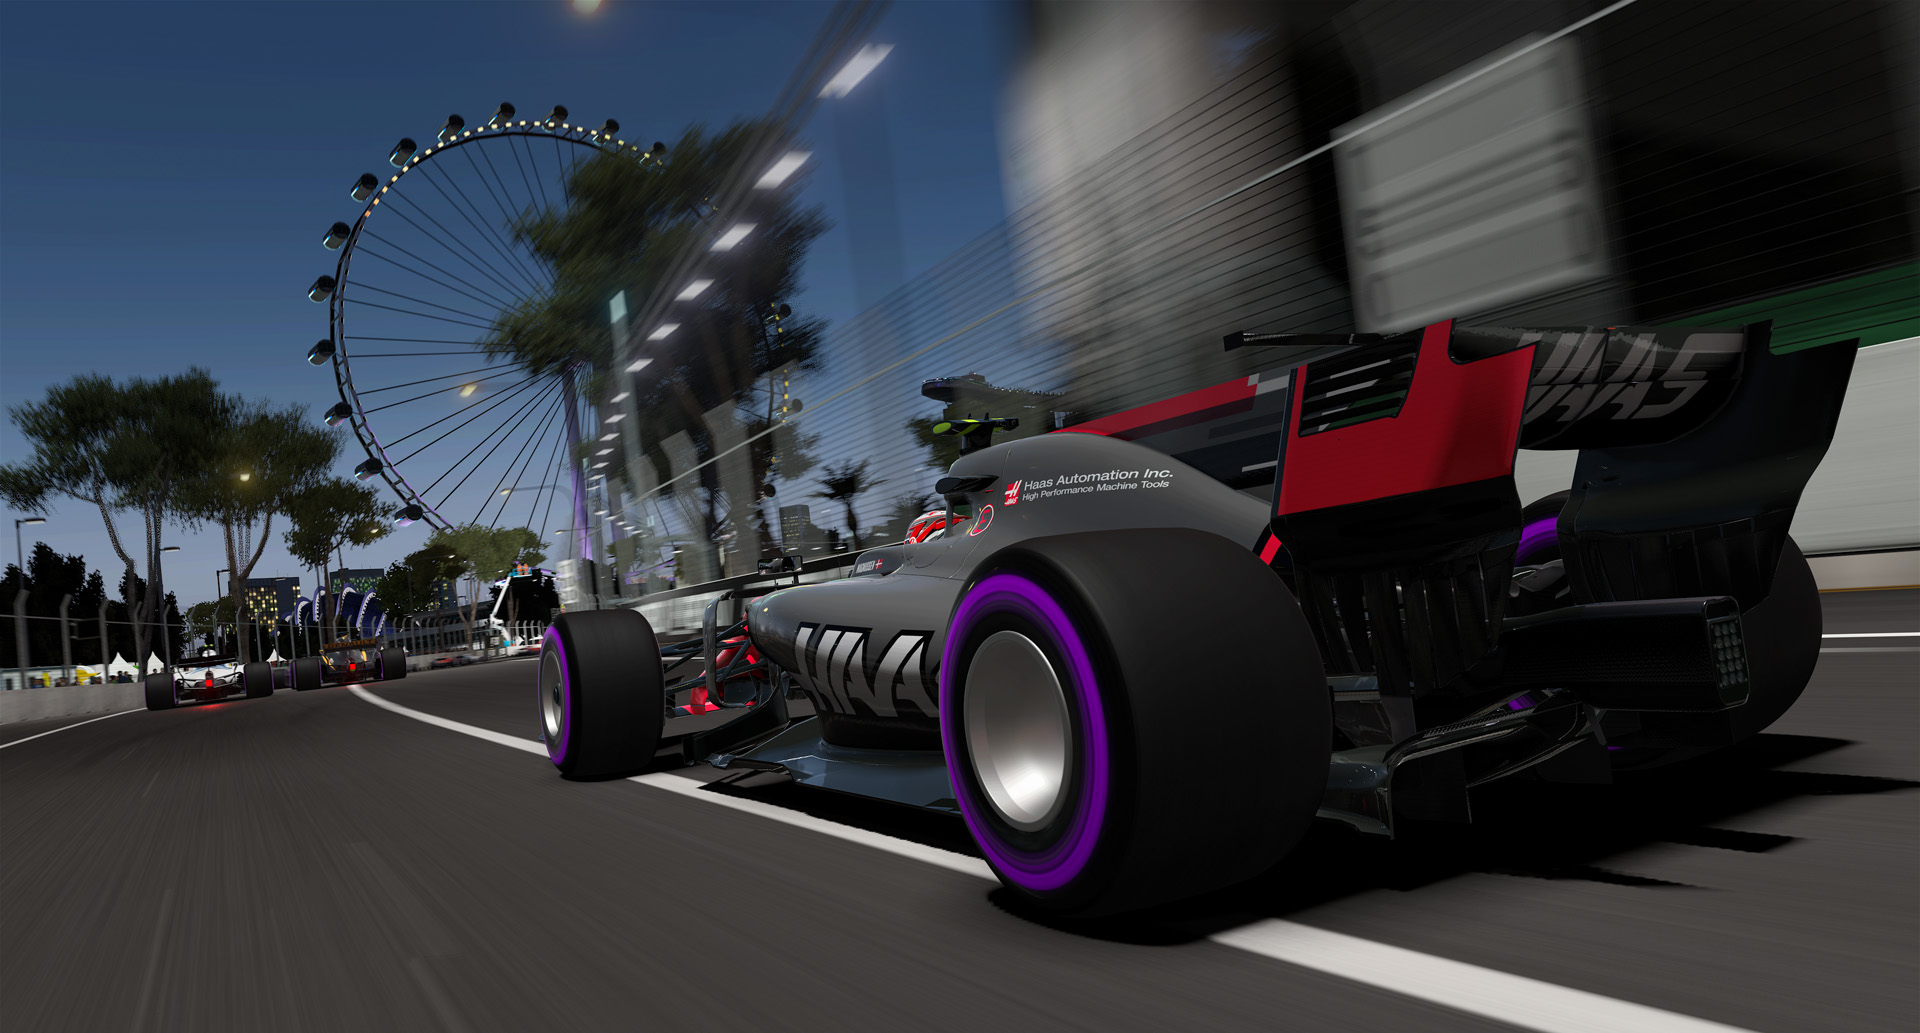 download f1 2017 v1.6 + multiplayer inc. all dlcs and updates repack by fitgirl singlelink iso rar part kumpulbagi diskokosmiko